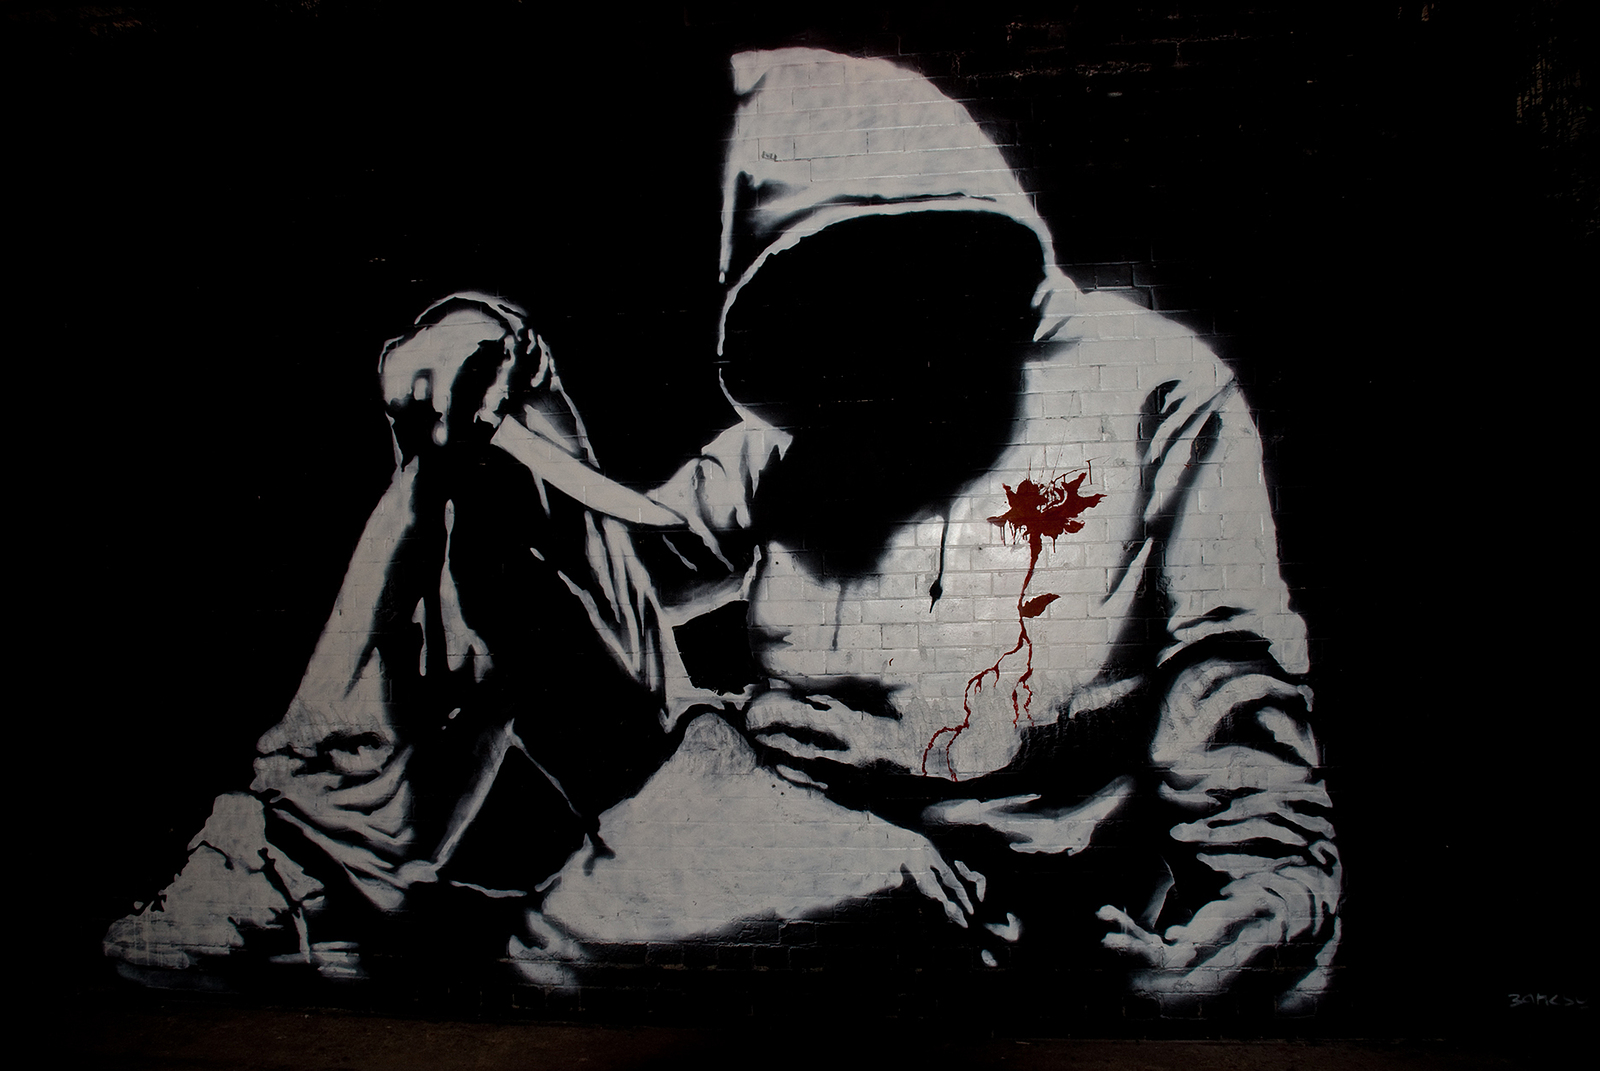 Banksy & The Rise of Outlaw Art: The Latest Banksy Film So Far